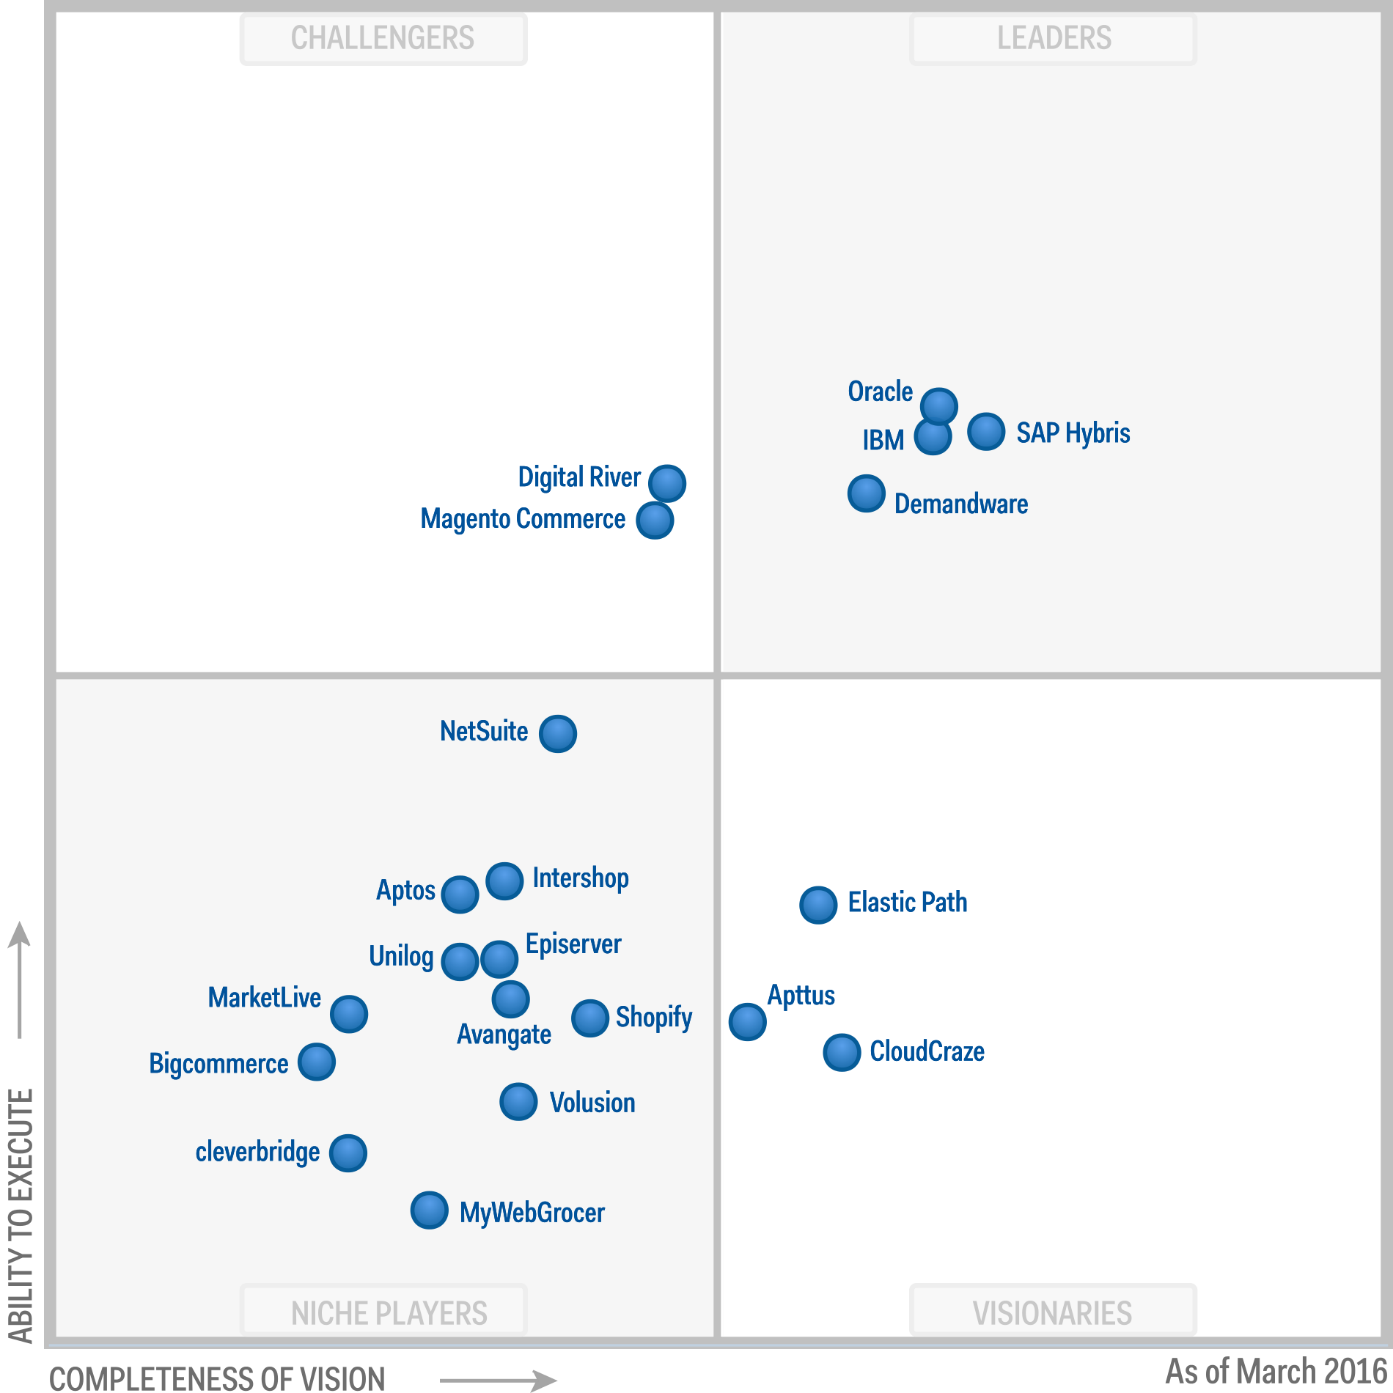 Magic Quadrant for Digital Commerce 2016 (G00270948)